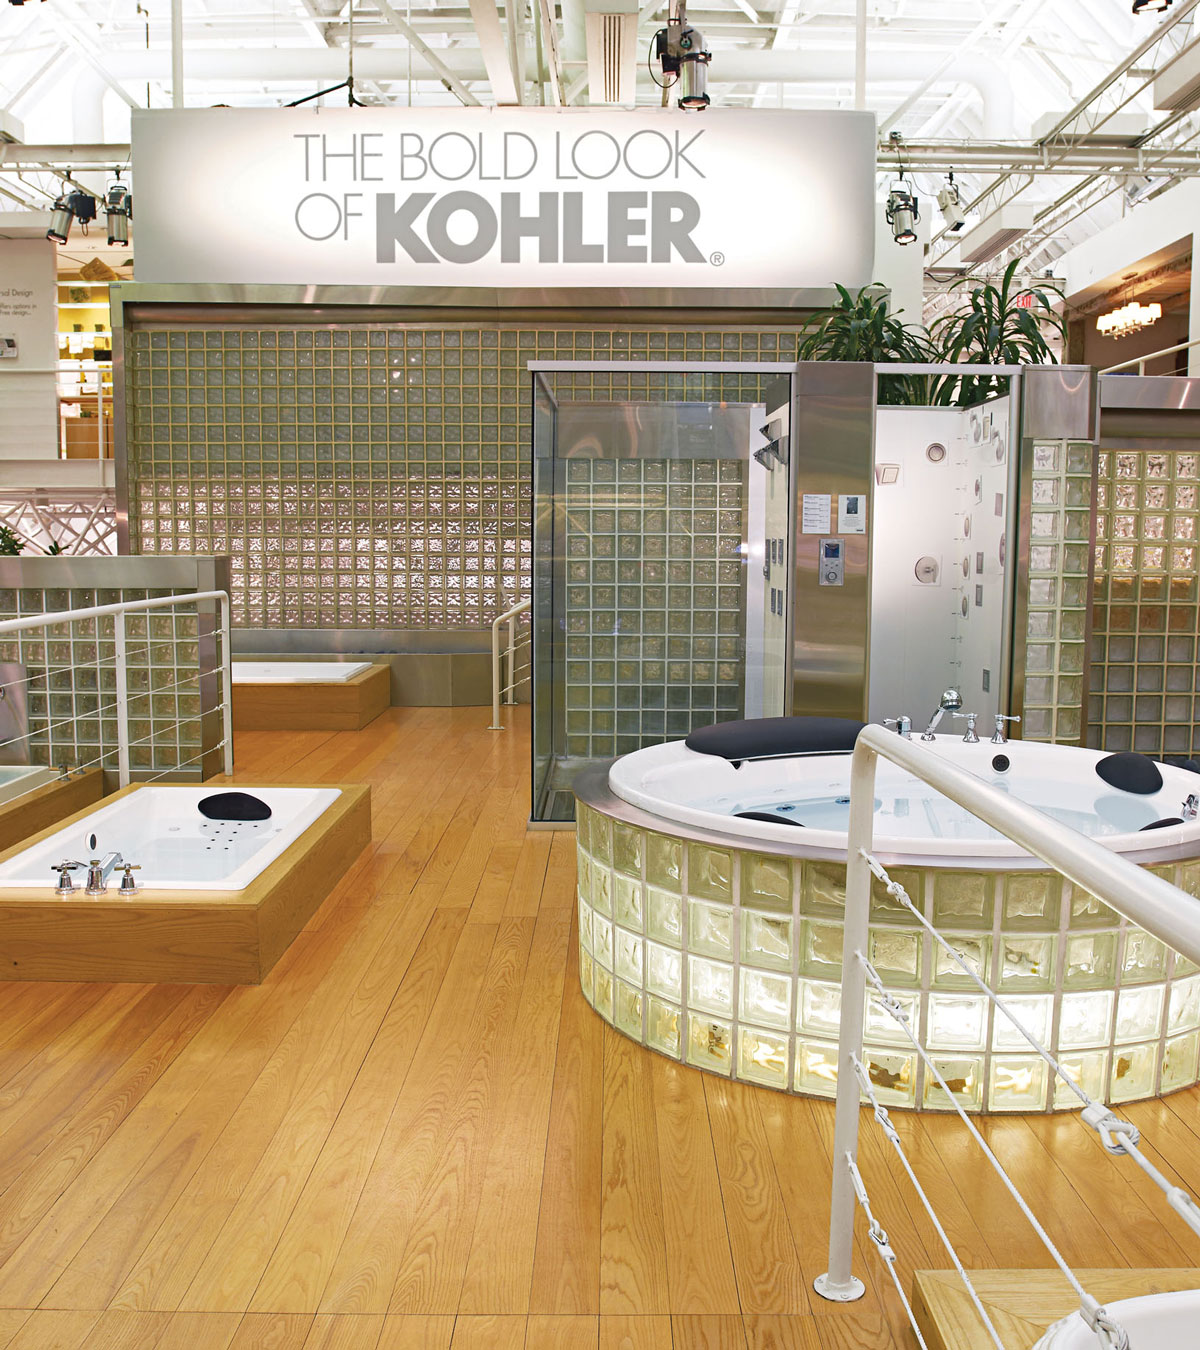 Kohler Design Center